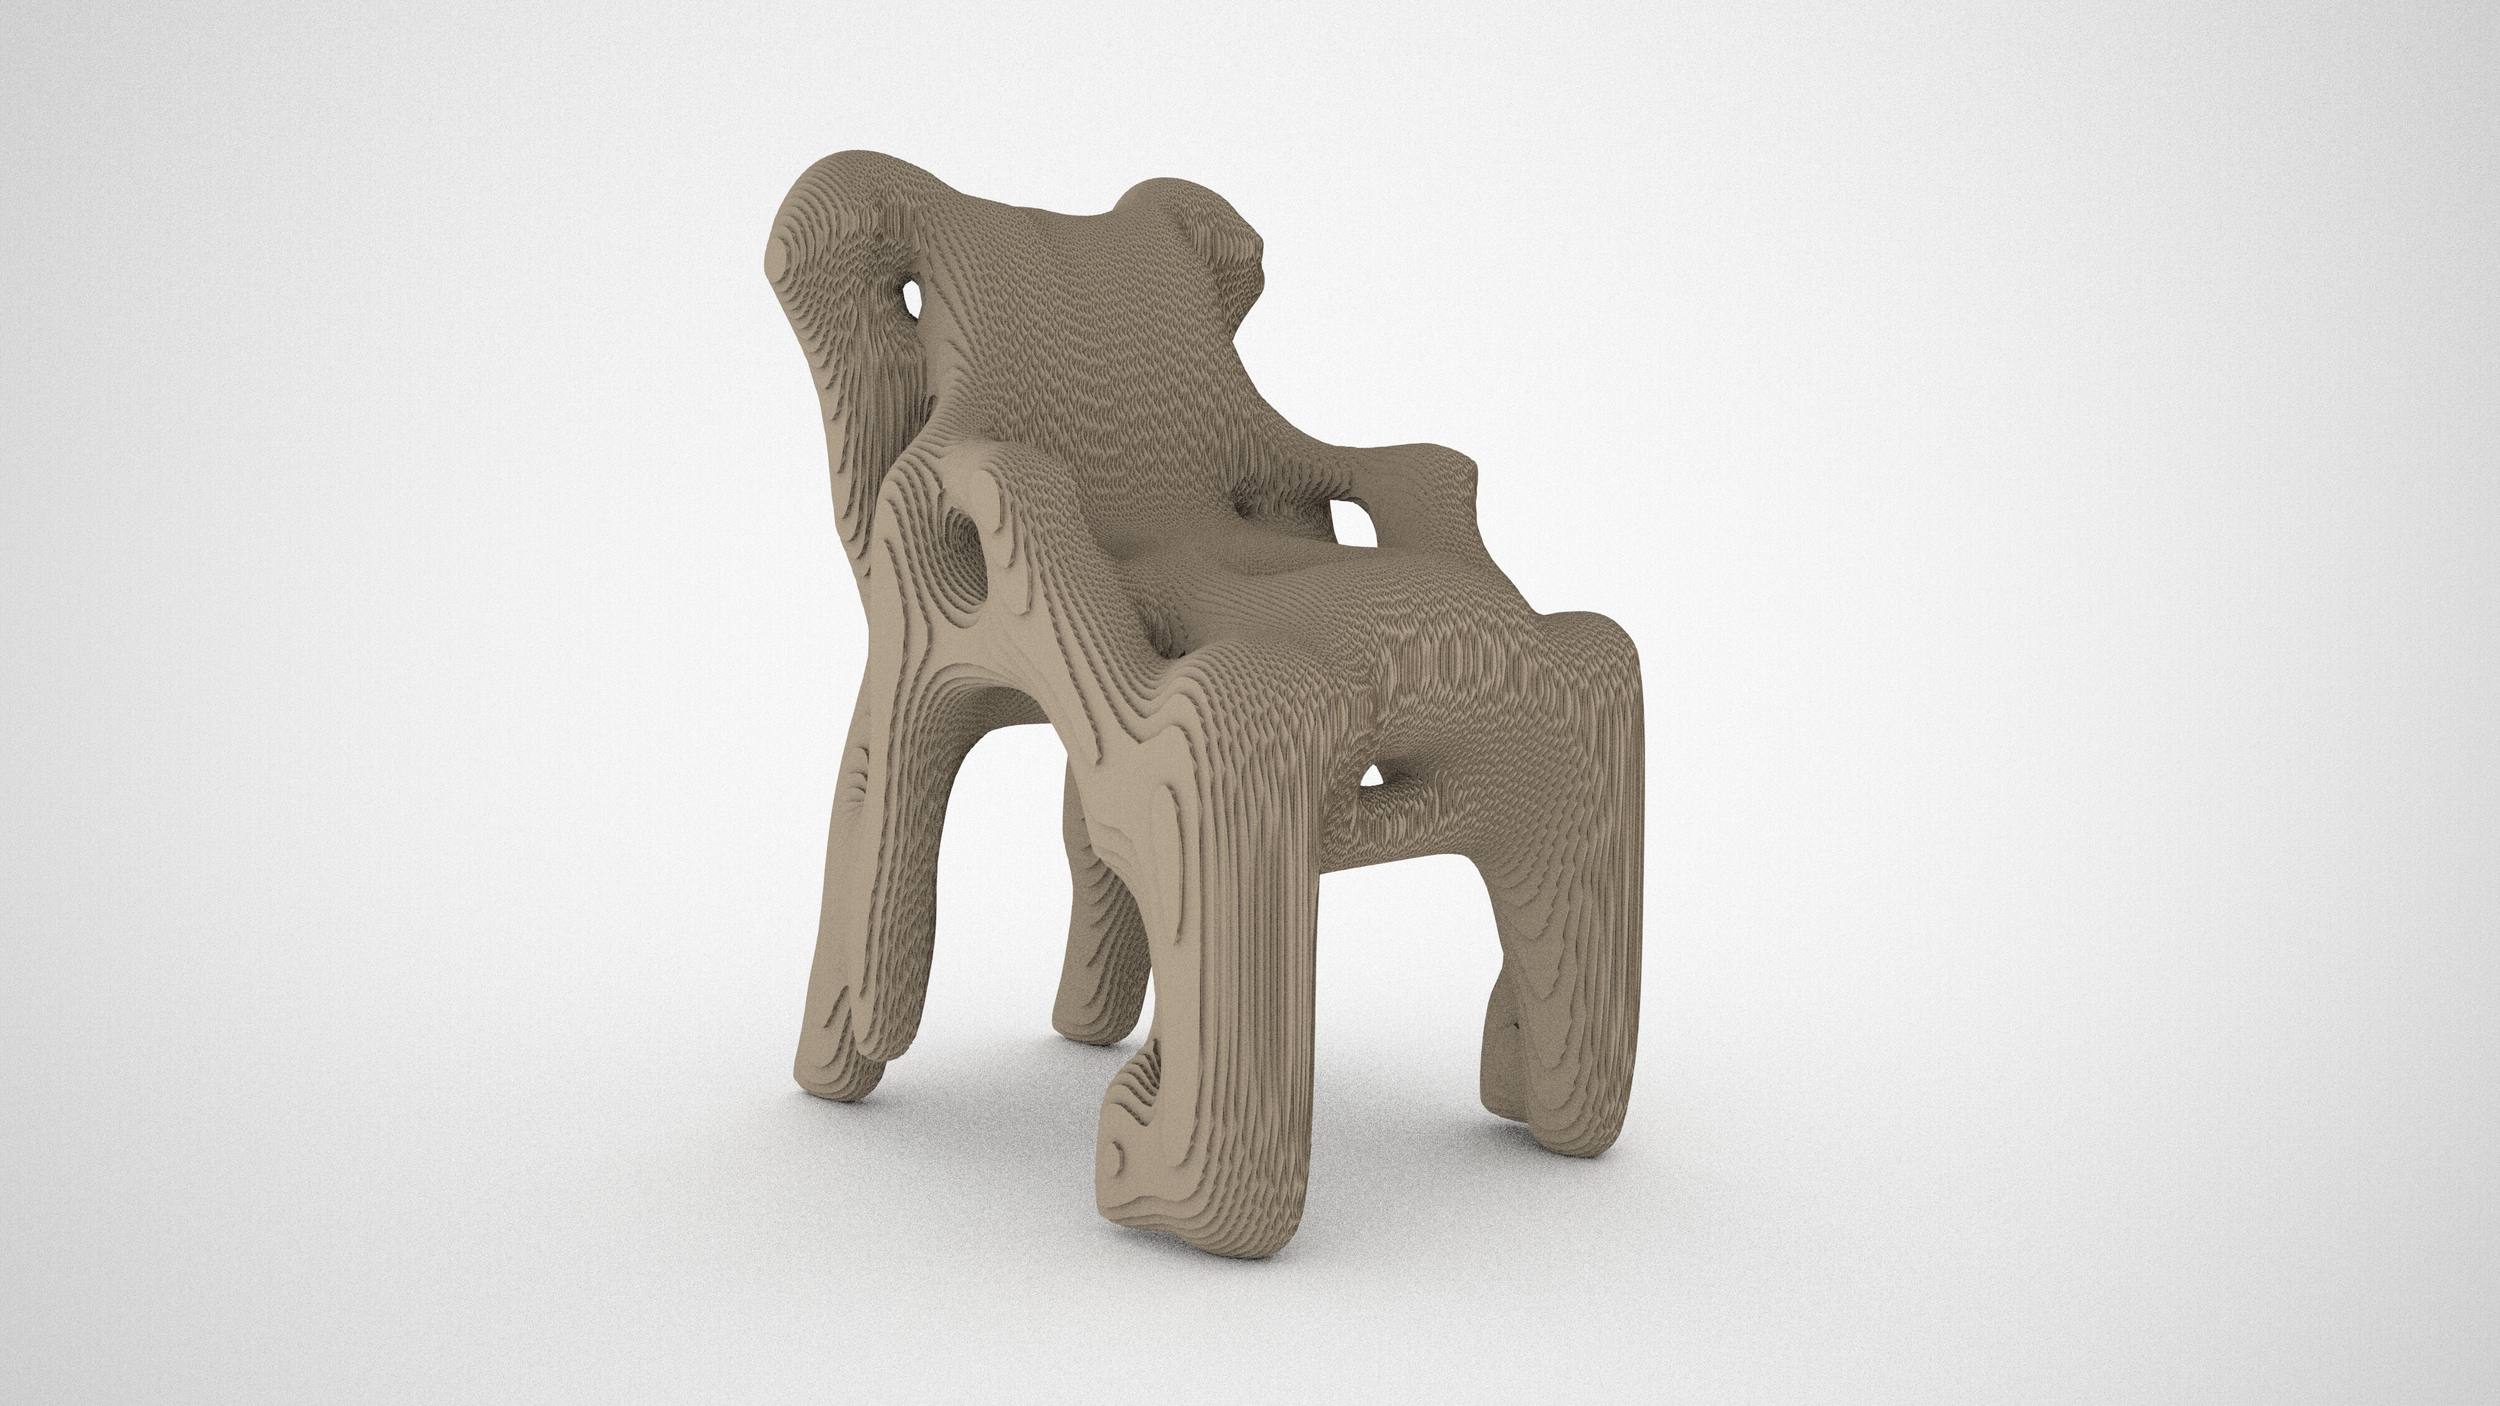 Teemu Seppänen: Mygenchair, experimental design application for generating chairs by an adaptation of the eigenface algorithm over a database of 25 classic chairs, 2012.